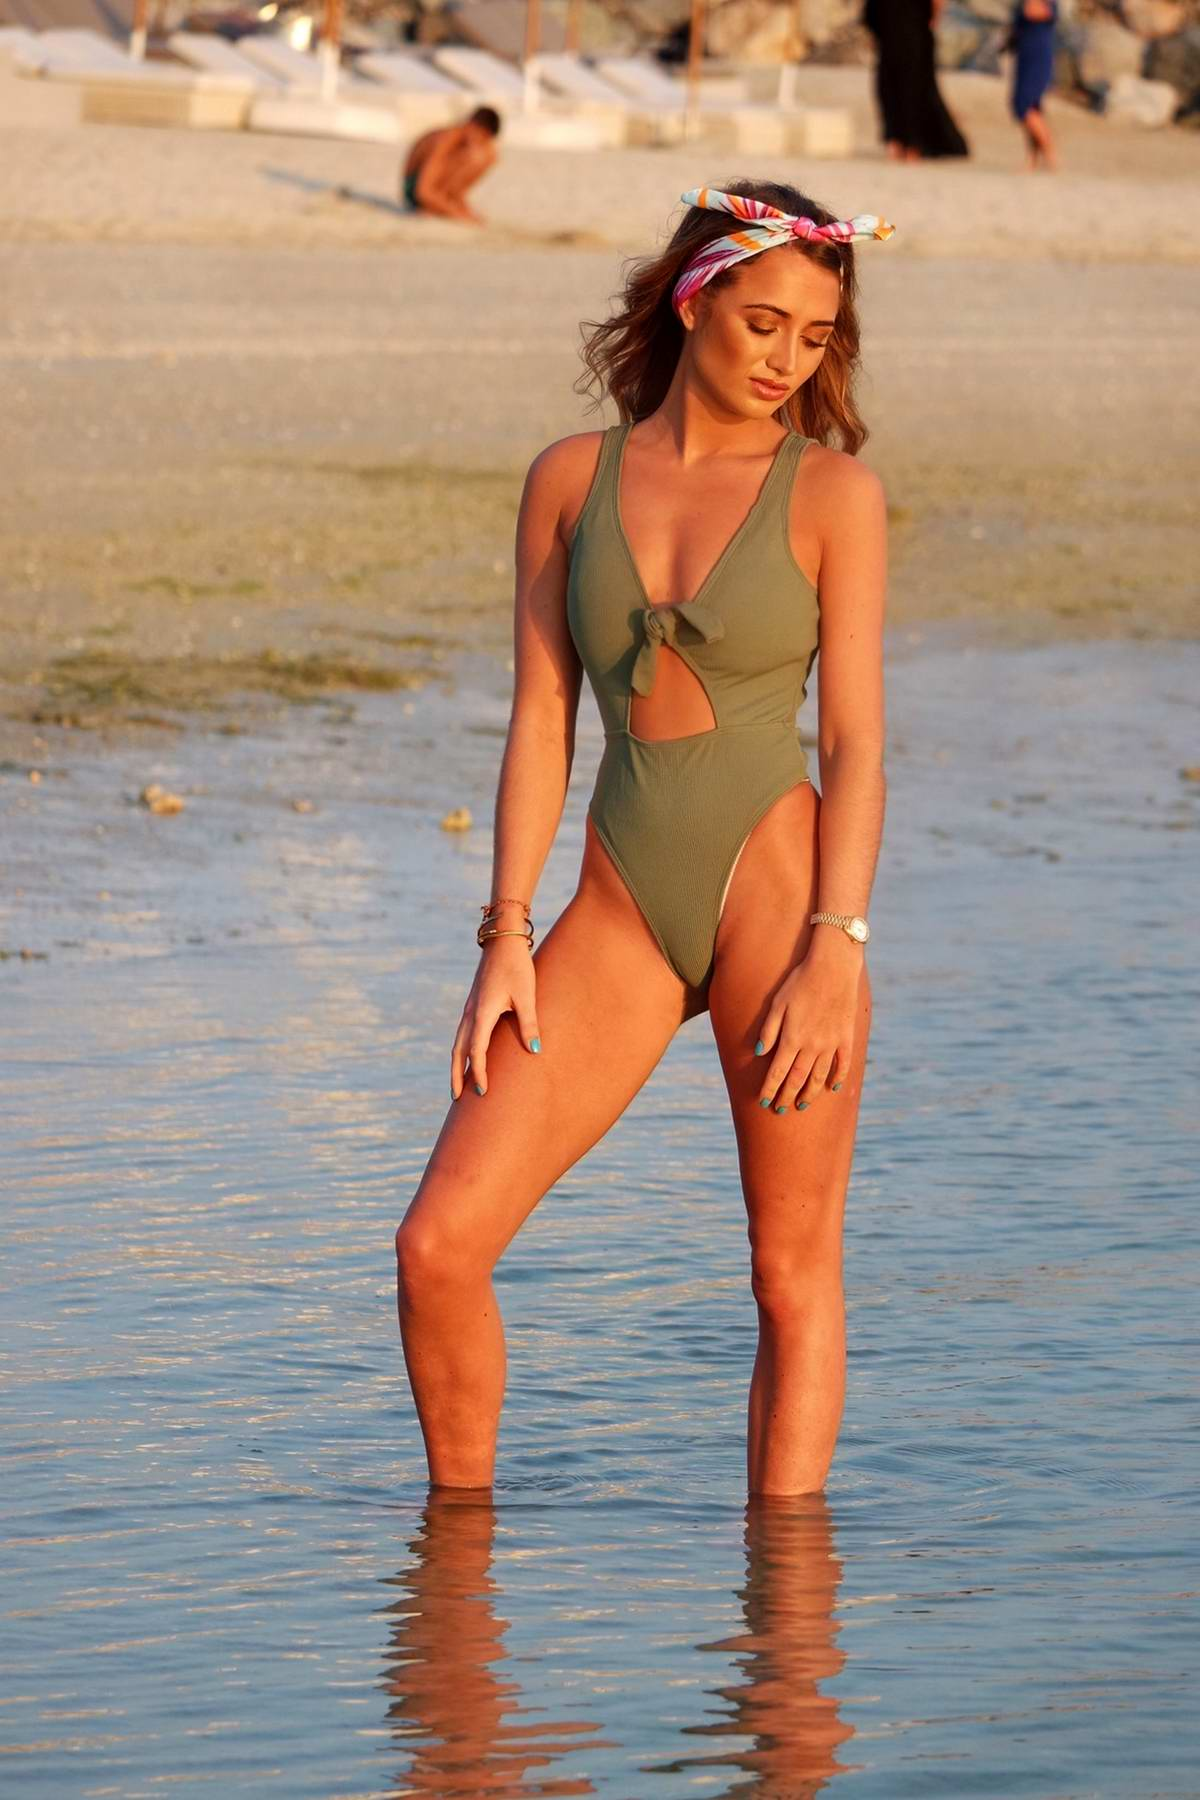 Georgia Harrison spotted wearing a green swimsuit on the beach in Dubai